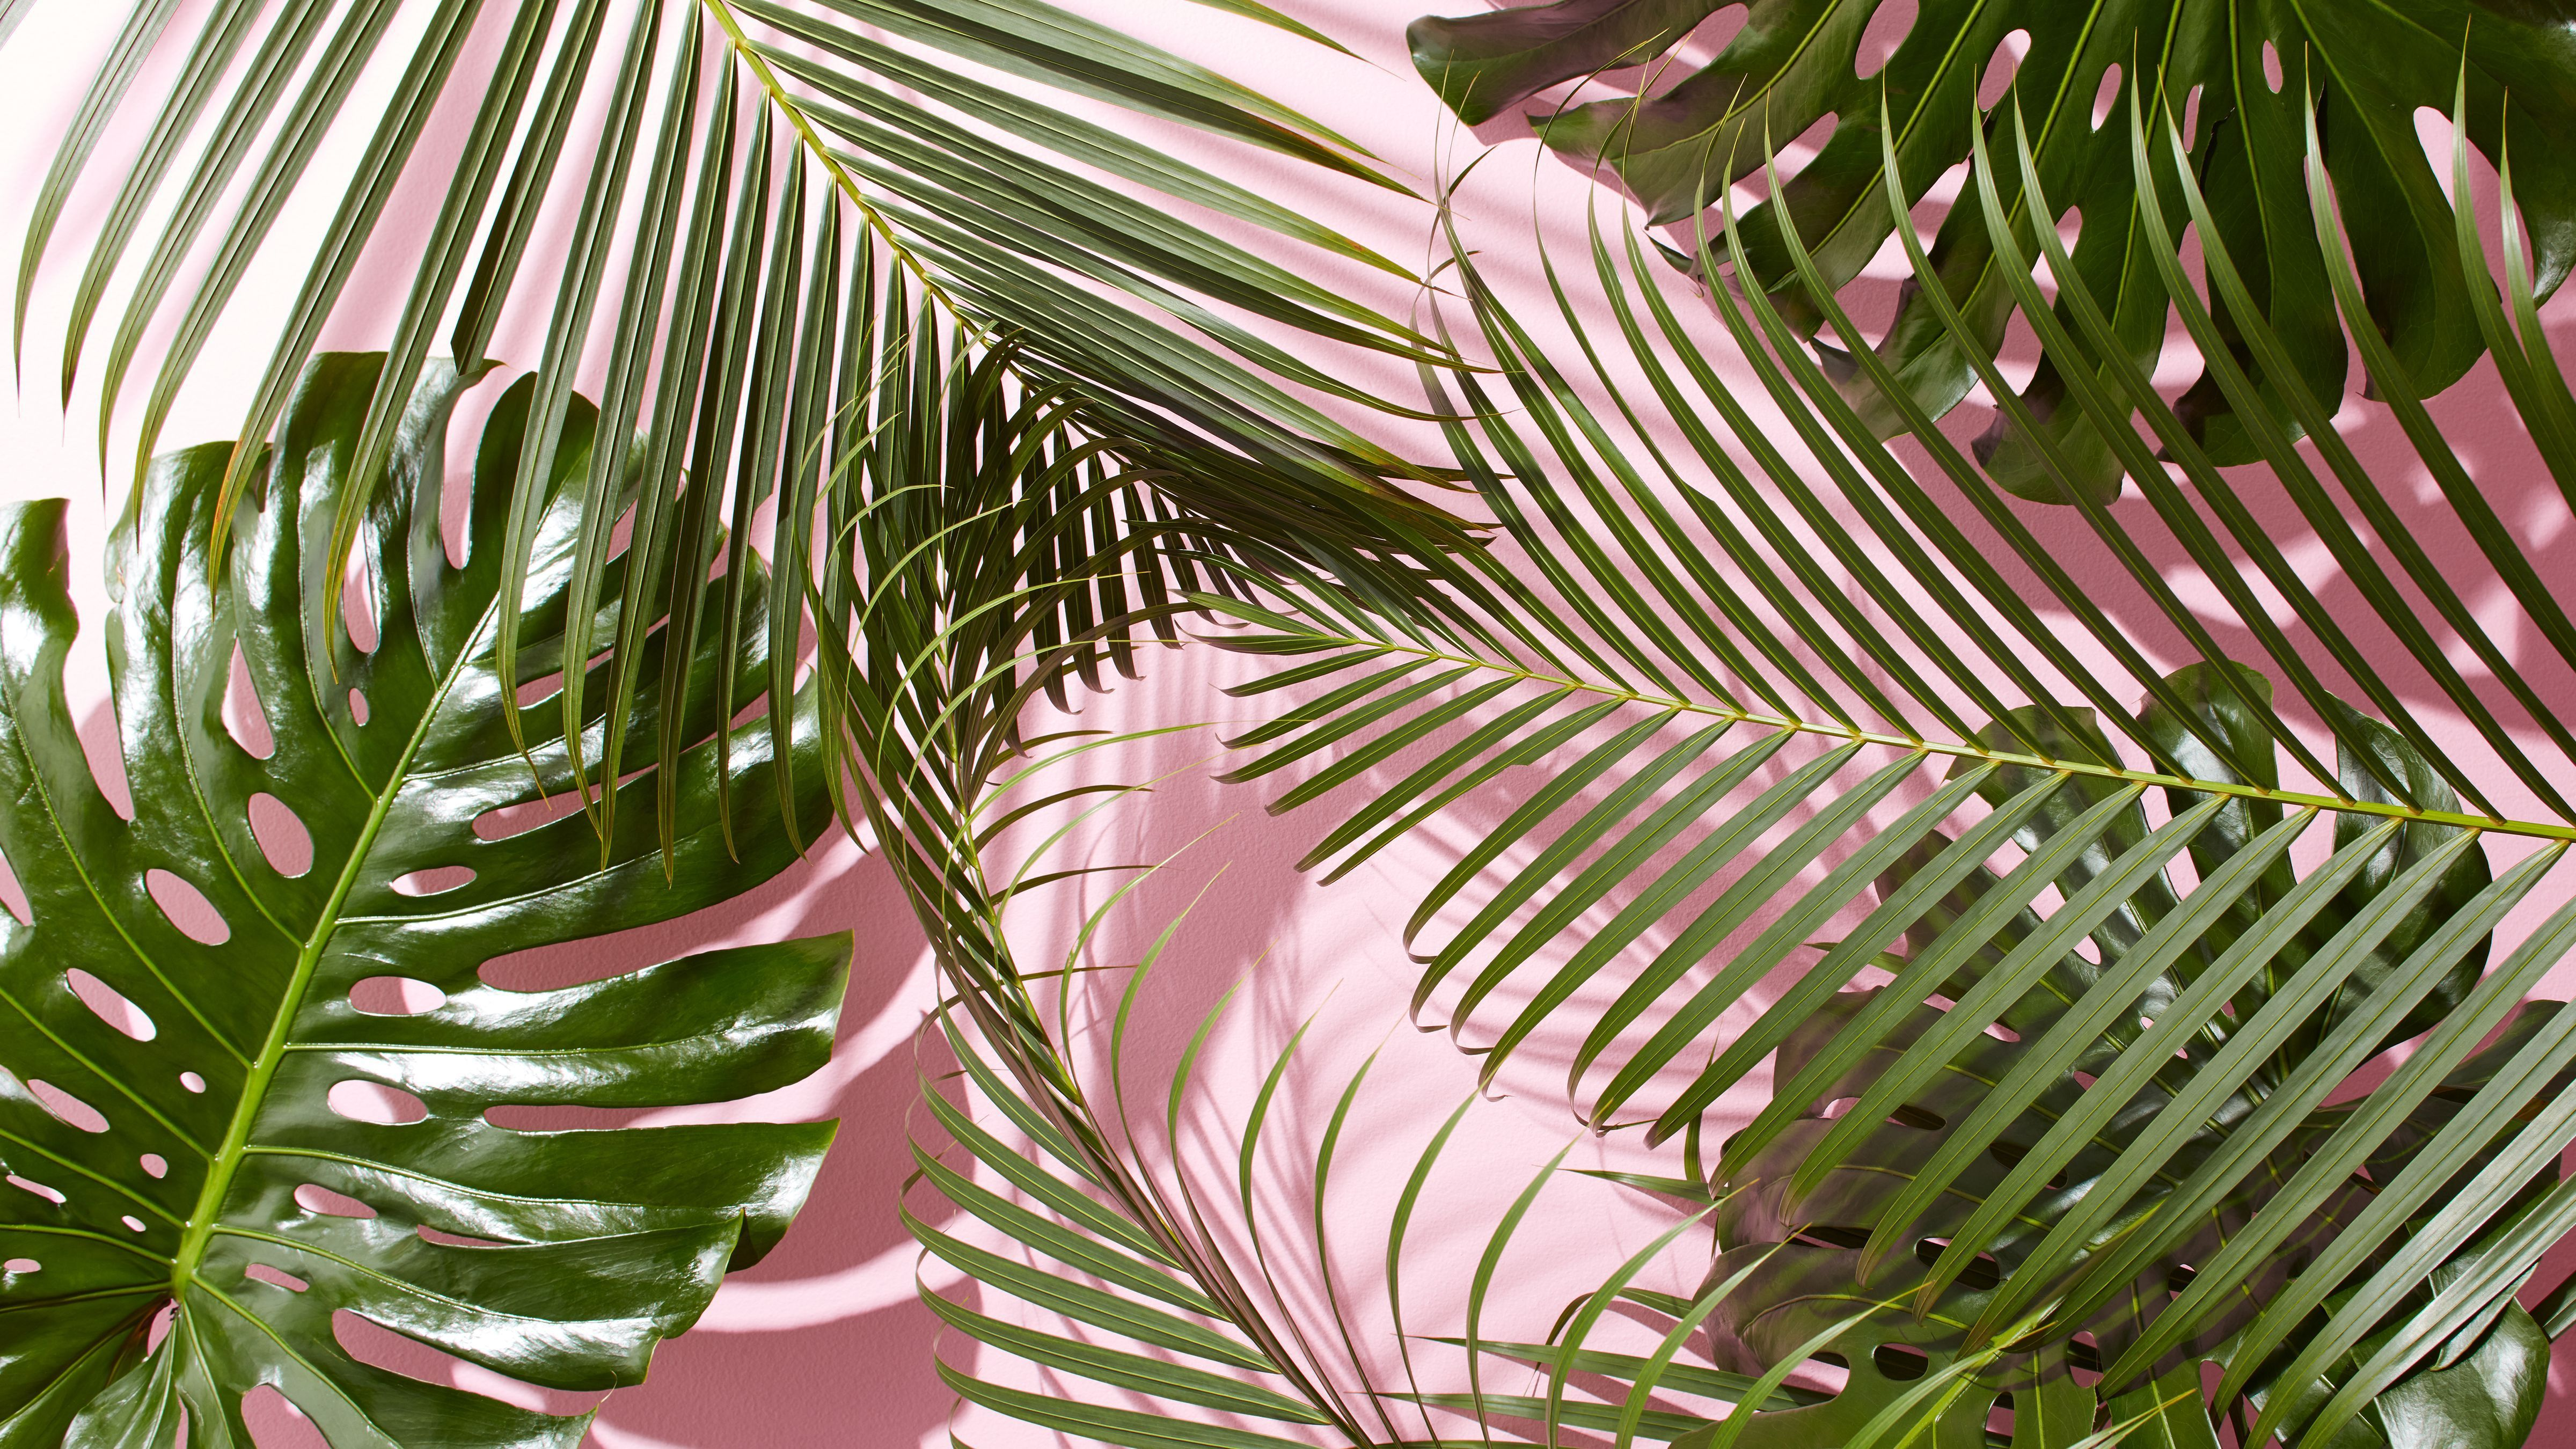 Aesthetic Palm Leaves Wallpapers Top Free Aesthetic Palm Leaves Backgrounds Wallpaperaccess Find the best free stock images about palm leaves. aesthetic palm leaves wallpapers top